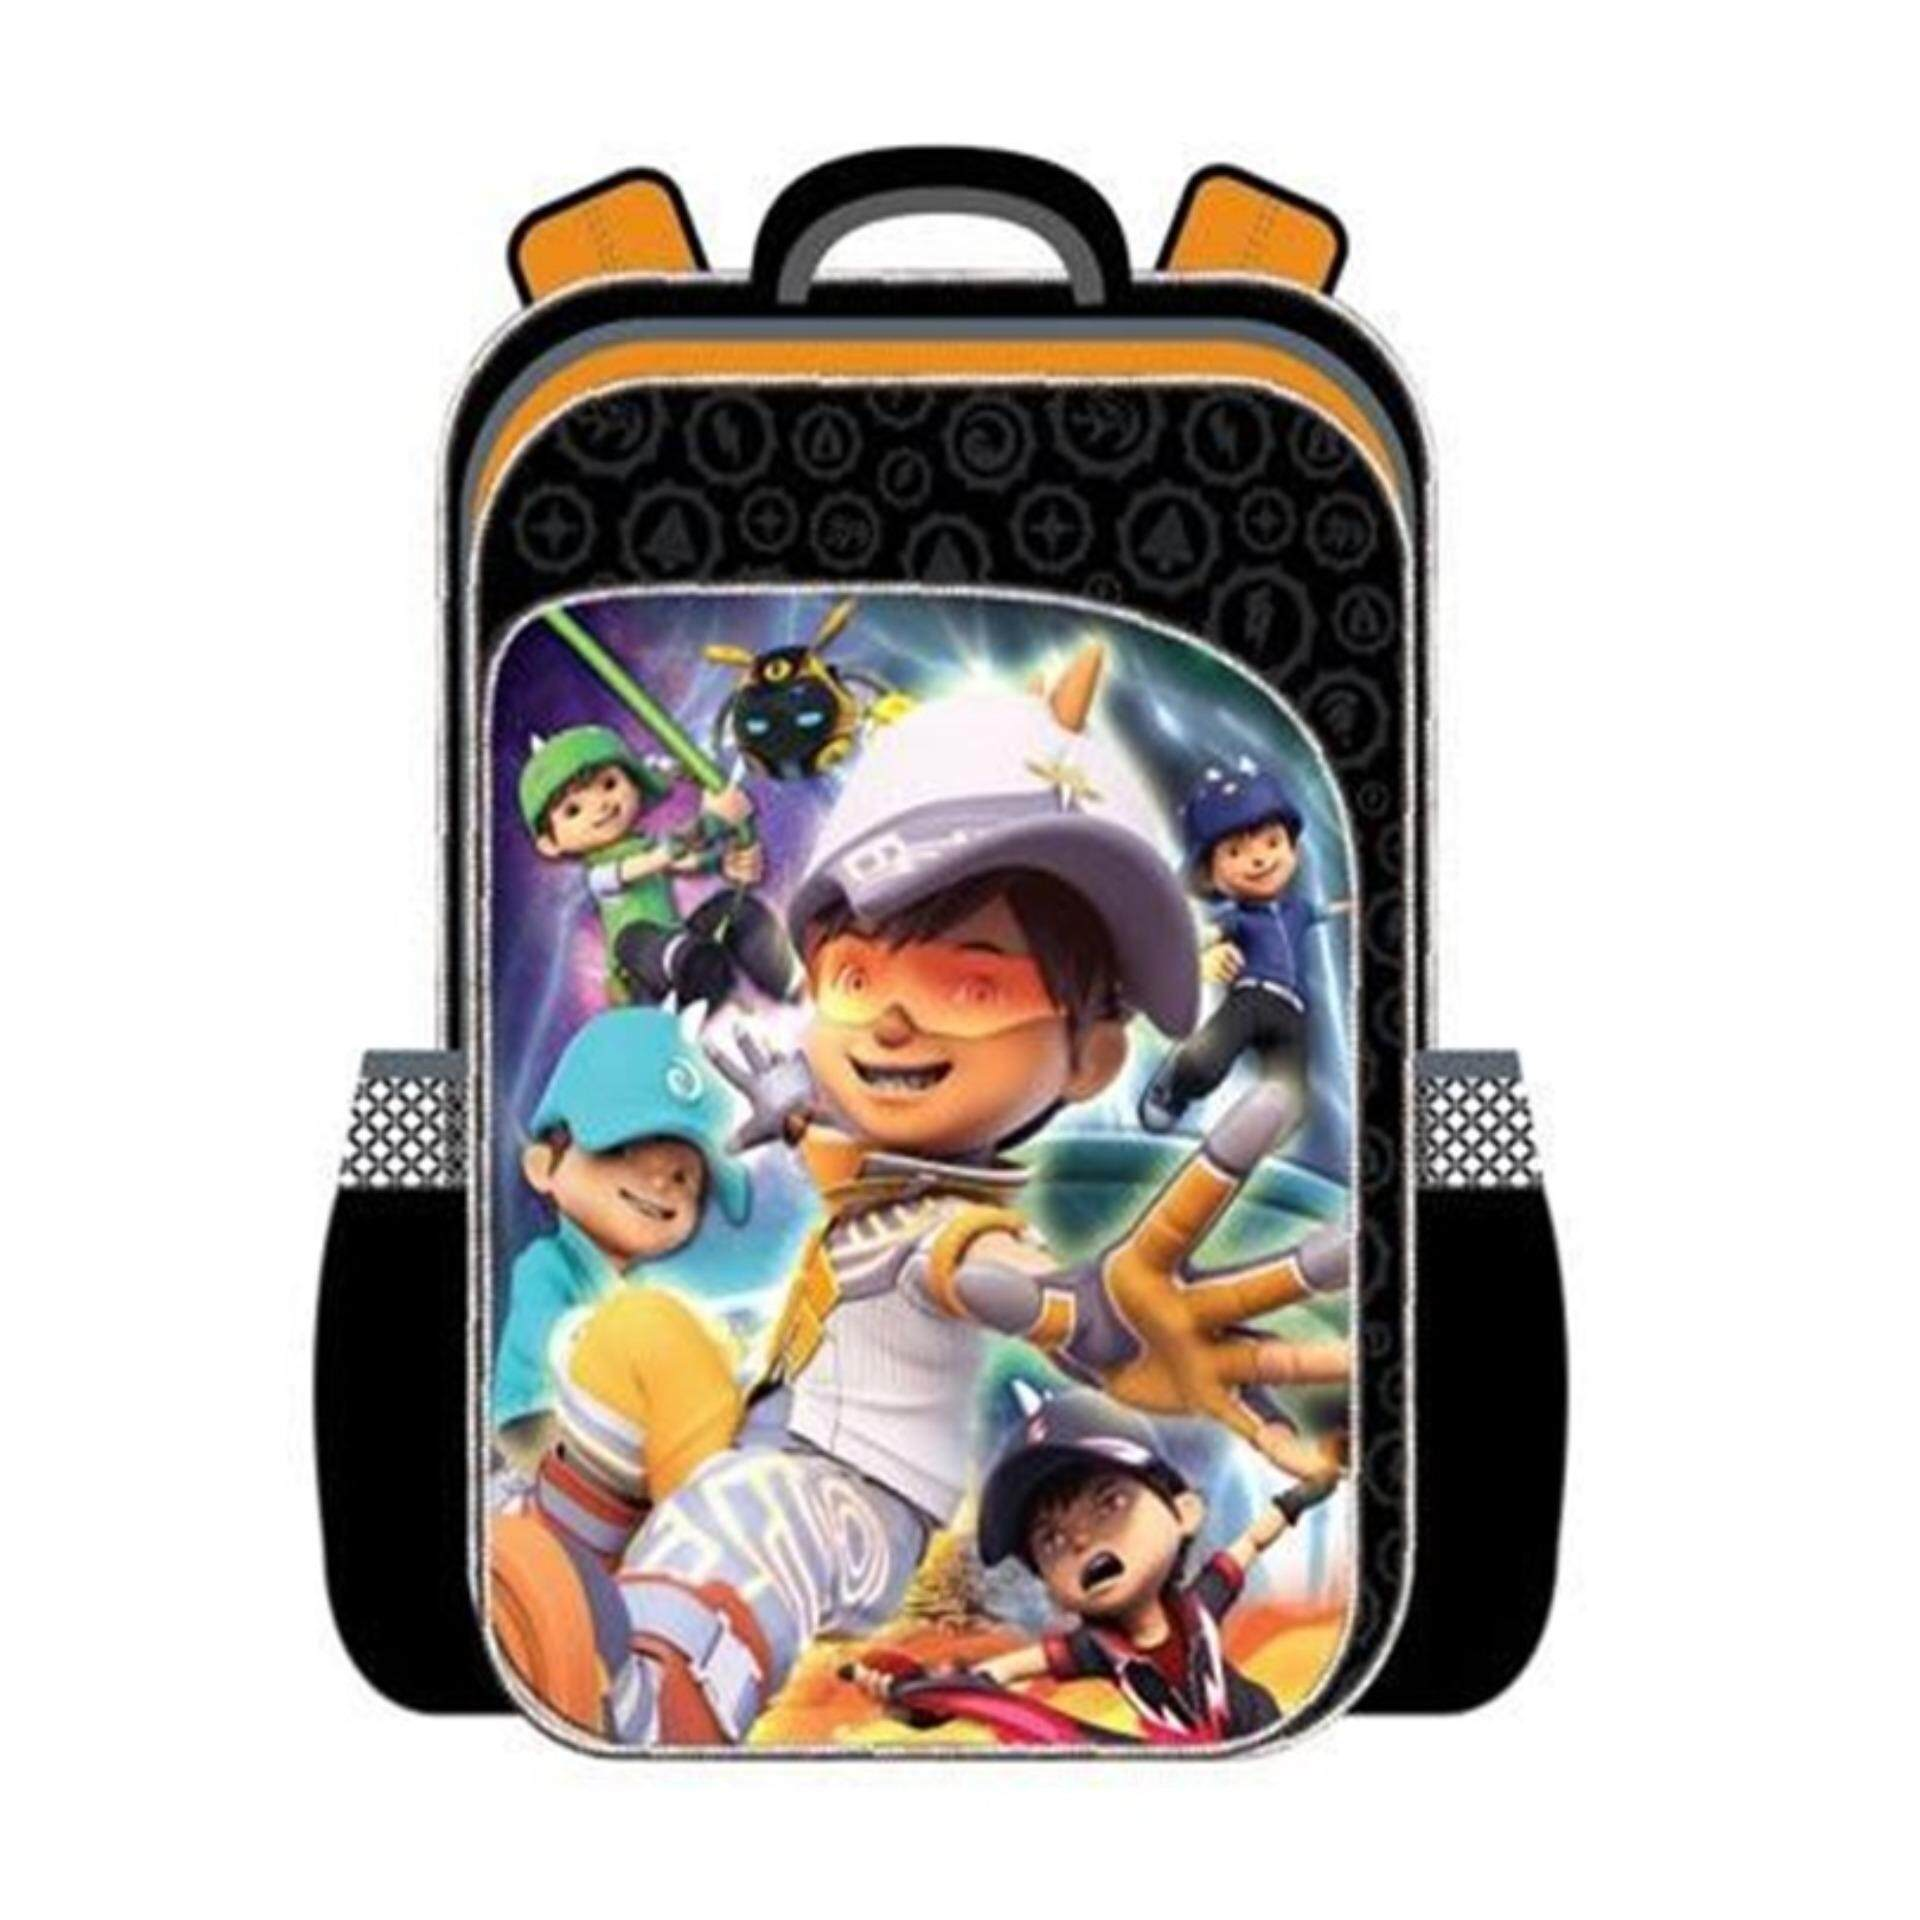 Boboiboy Galaxy Primary School Bag Backpack - Boboiboy Solar